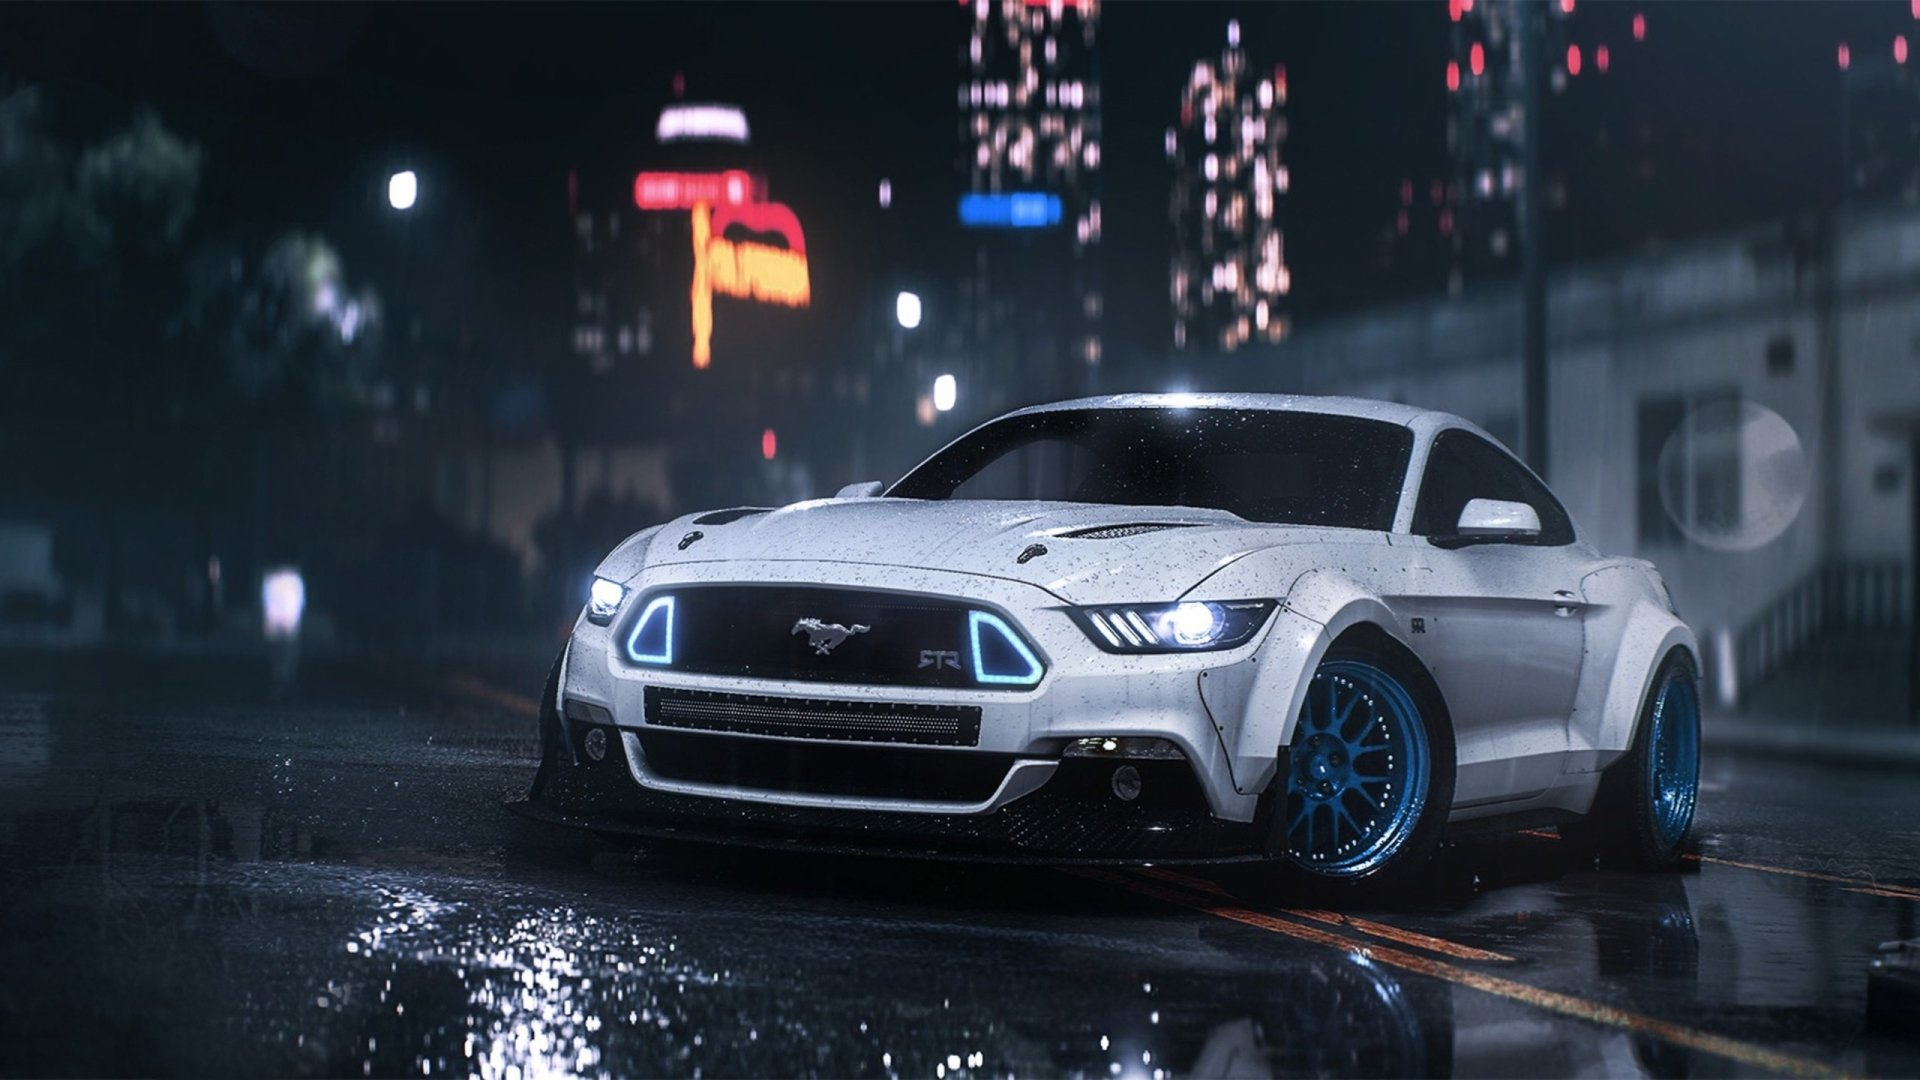 43 Need For Speed Payback Hd Wallpapers Background